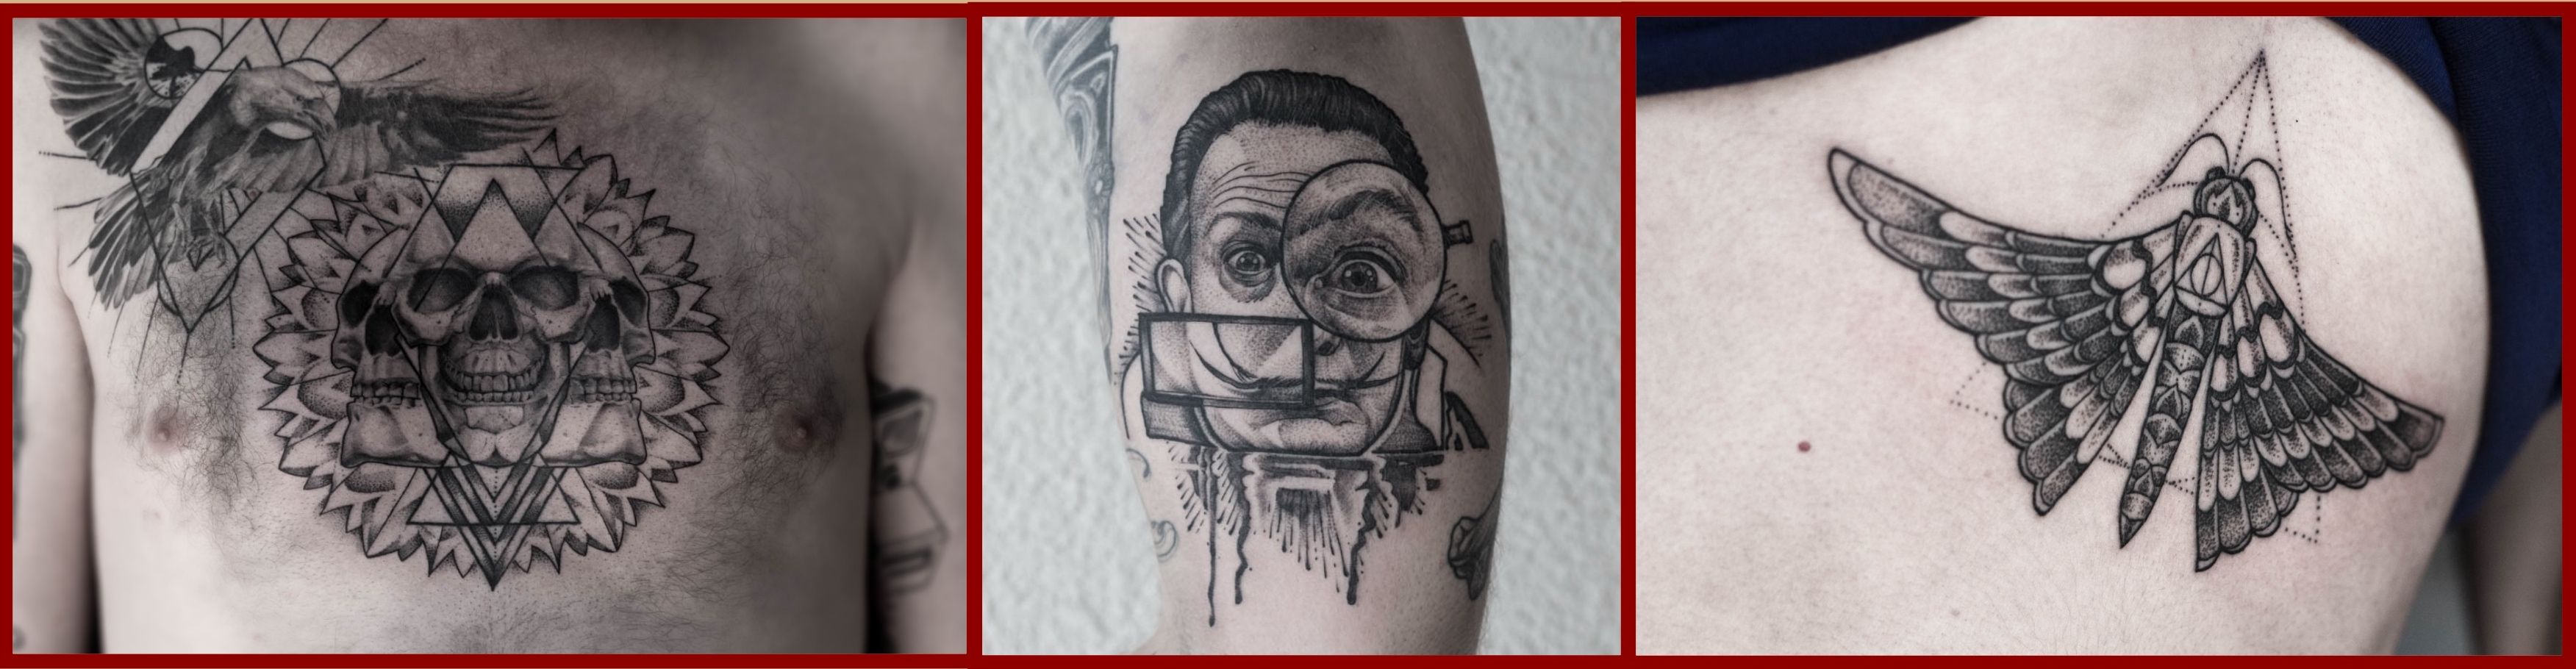 A selection of tattoos by Sean Perrins